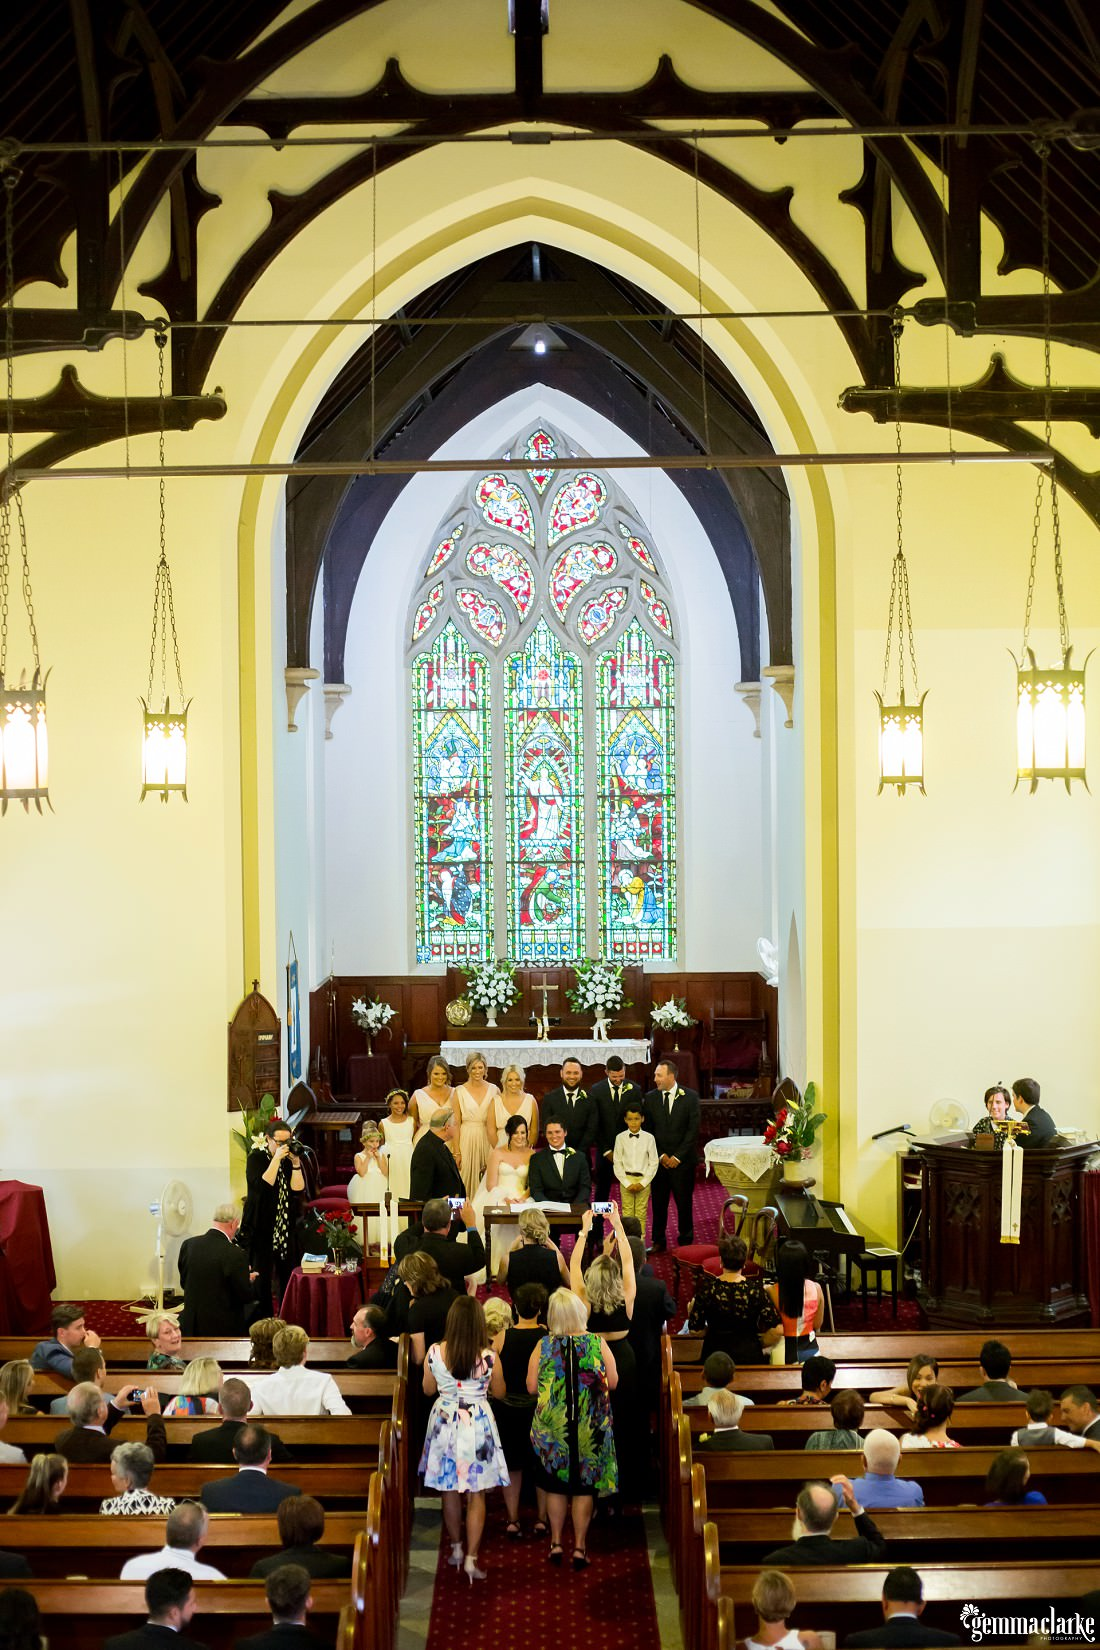 Wedding guests take photos of the bridal party in a church